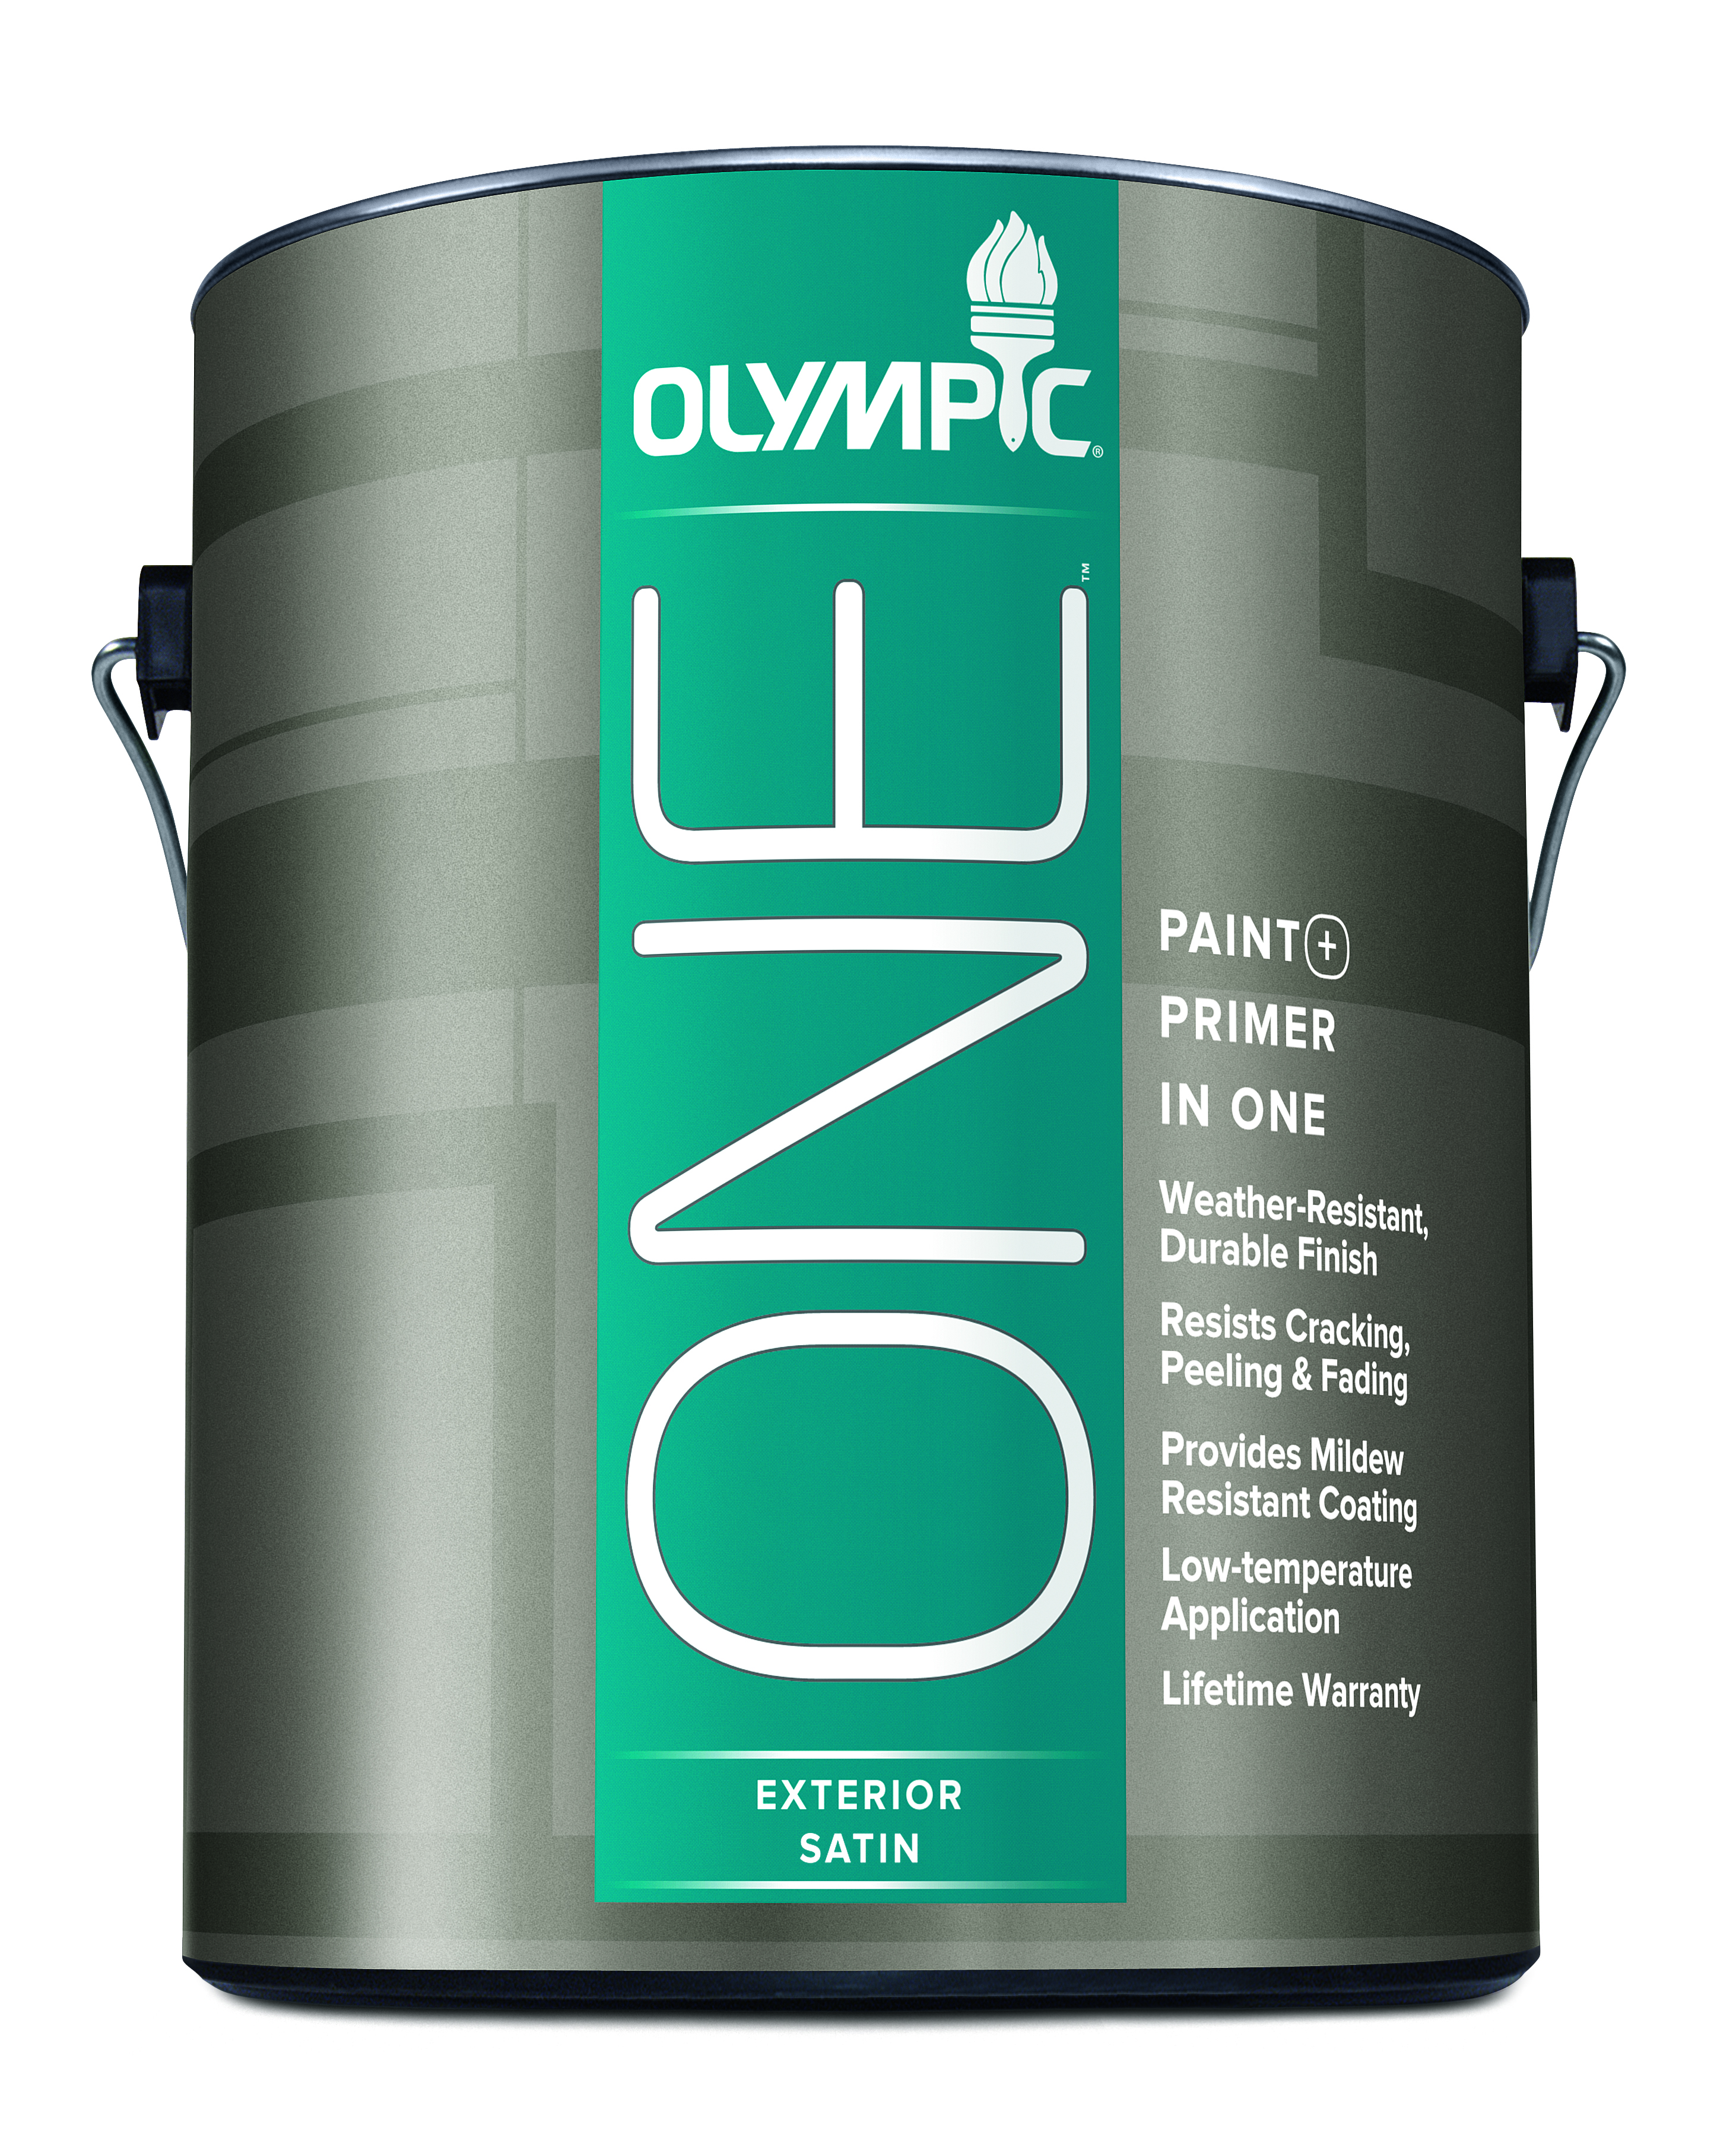 Cranberry Township Pa March 25 2017 Olympic Paint And Stain Announced Today The Launch Of One Exterior A Premium Latex